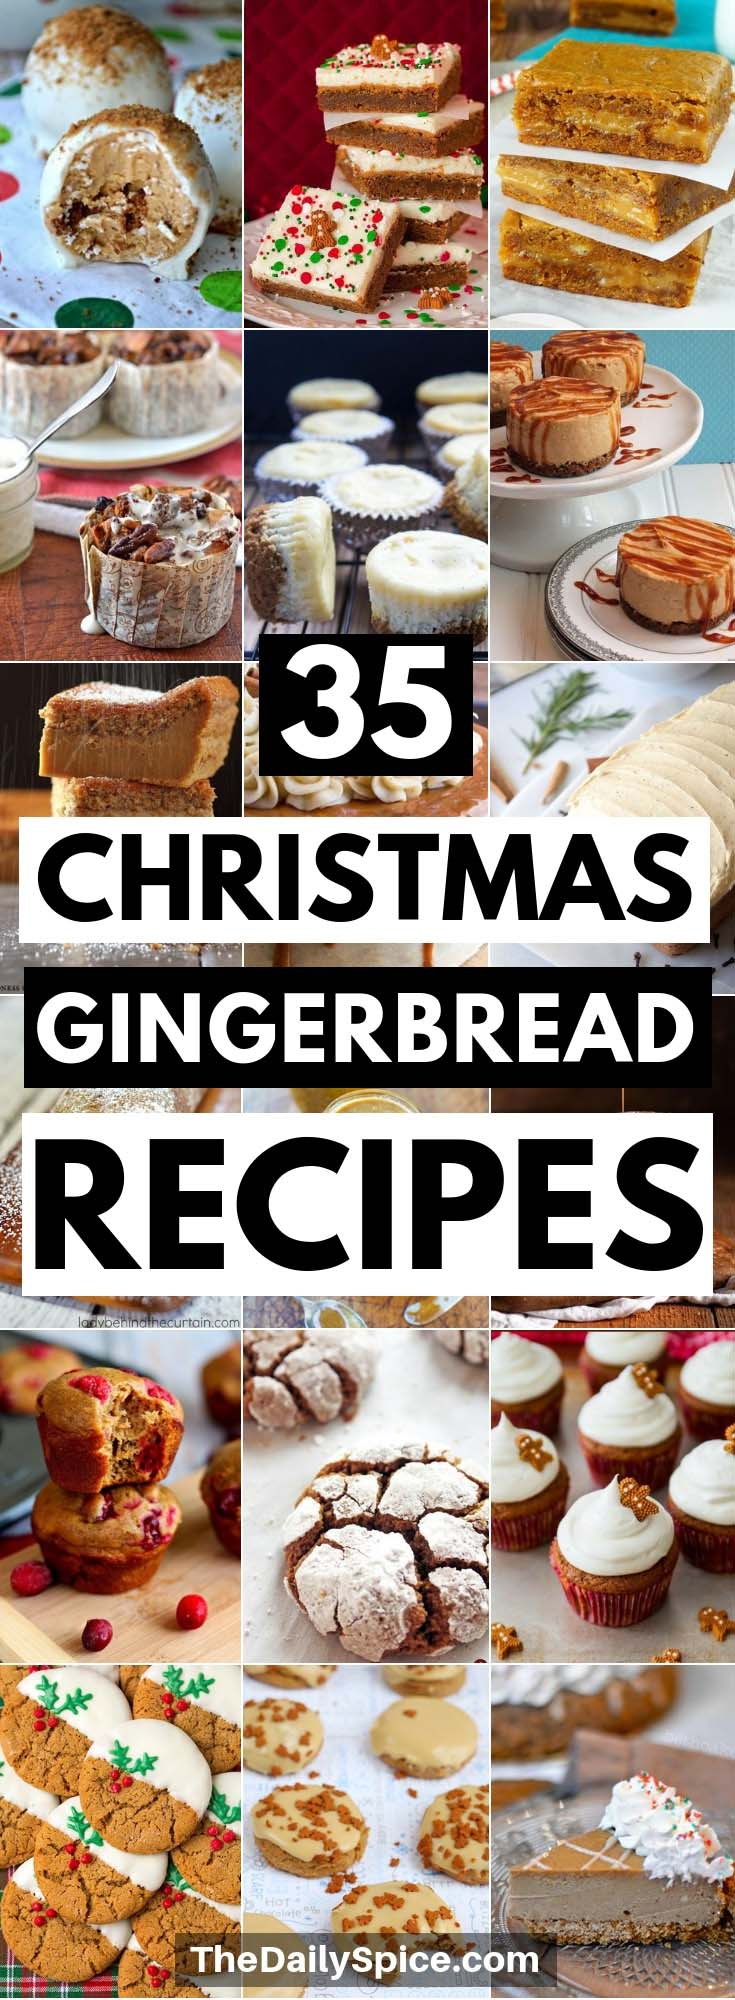 Christmas Gingerbread Recipes: Christmas Gingerbread Recipes